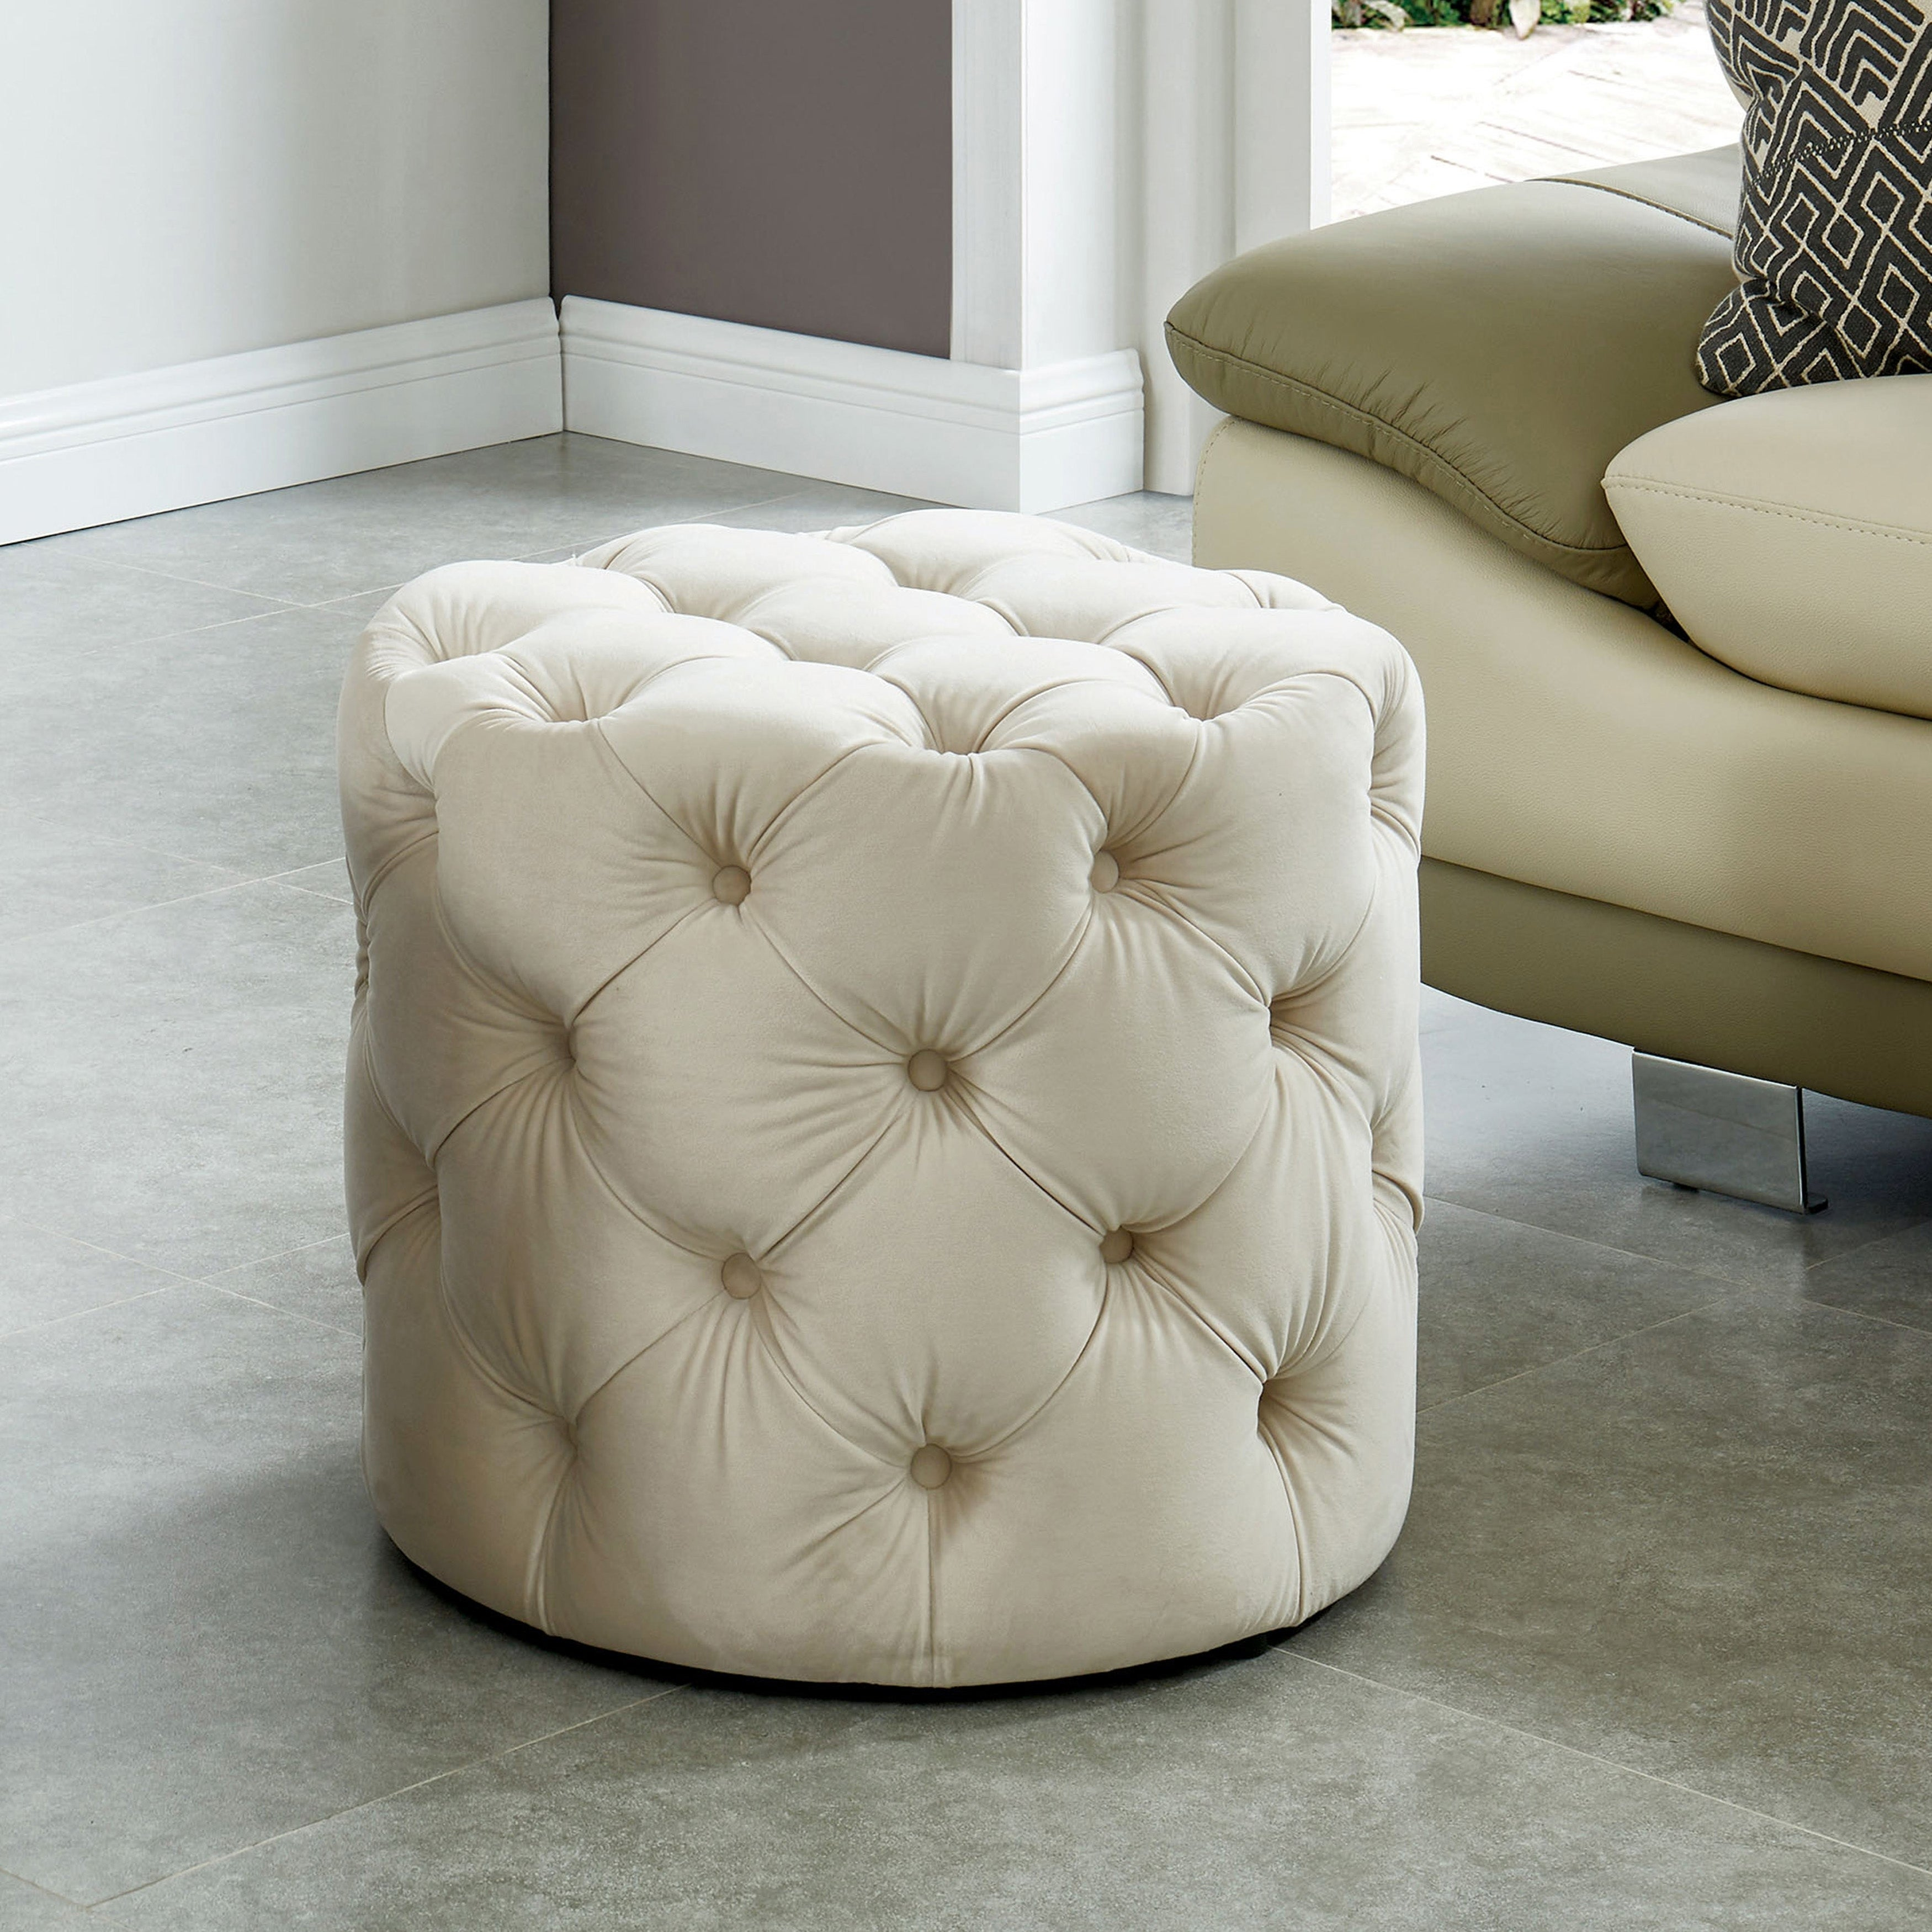 Cool Furniture Of America Nadia Iii Tufted 20 Inch Round Ottoman Dailytribune Chair Design For Home Dailytribuneorg